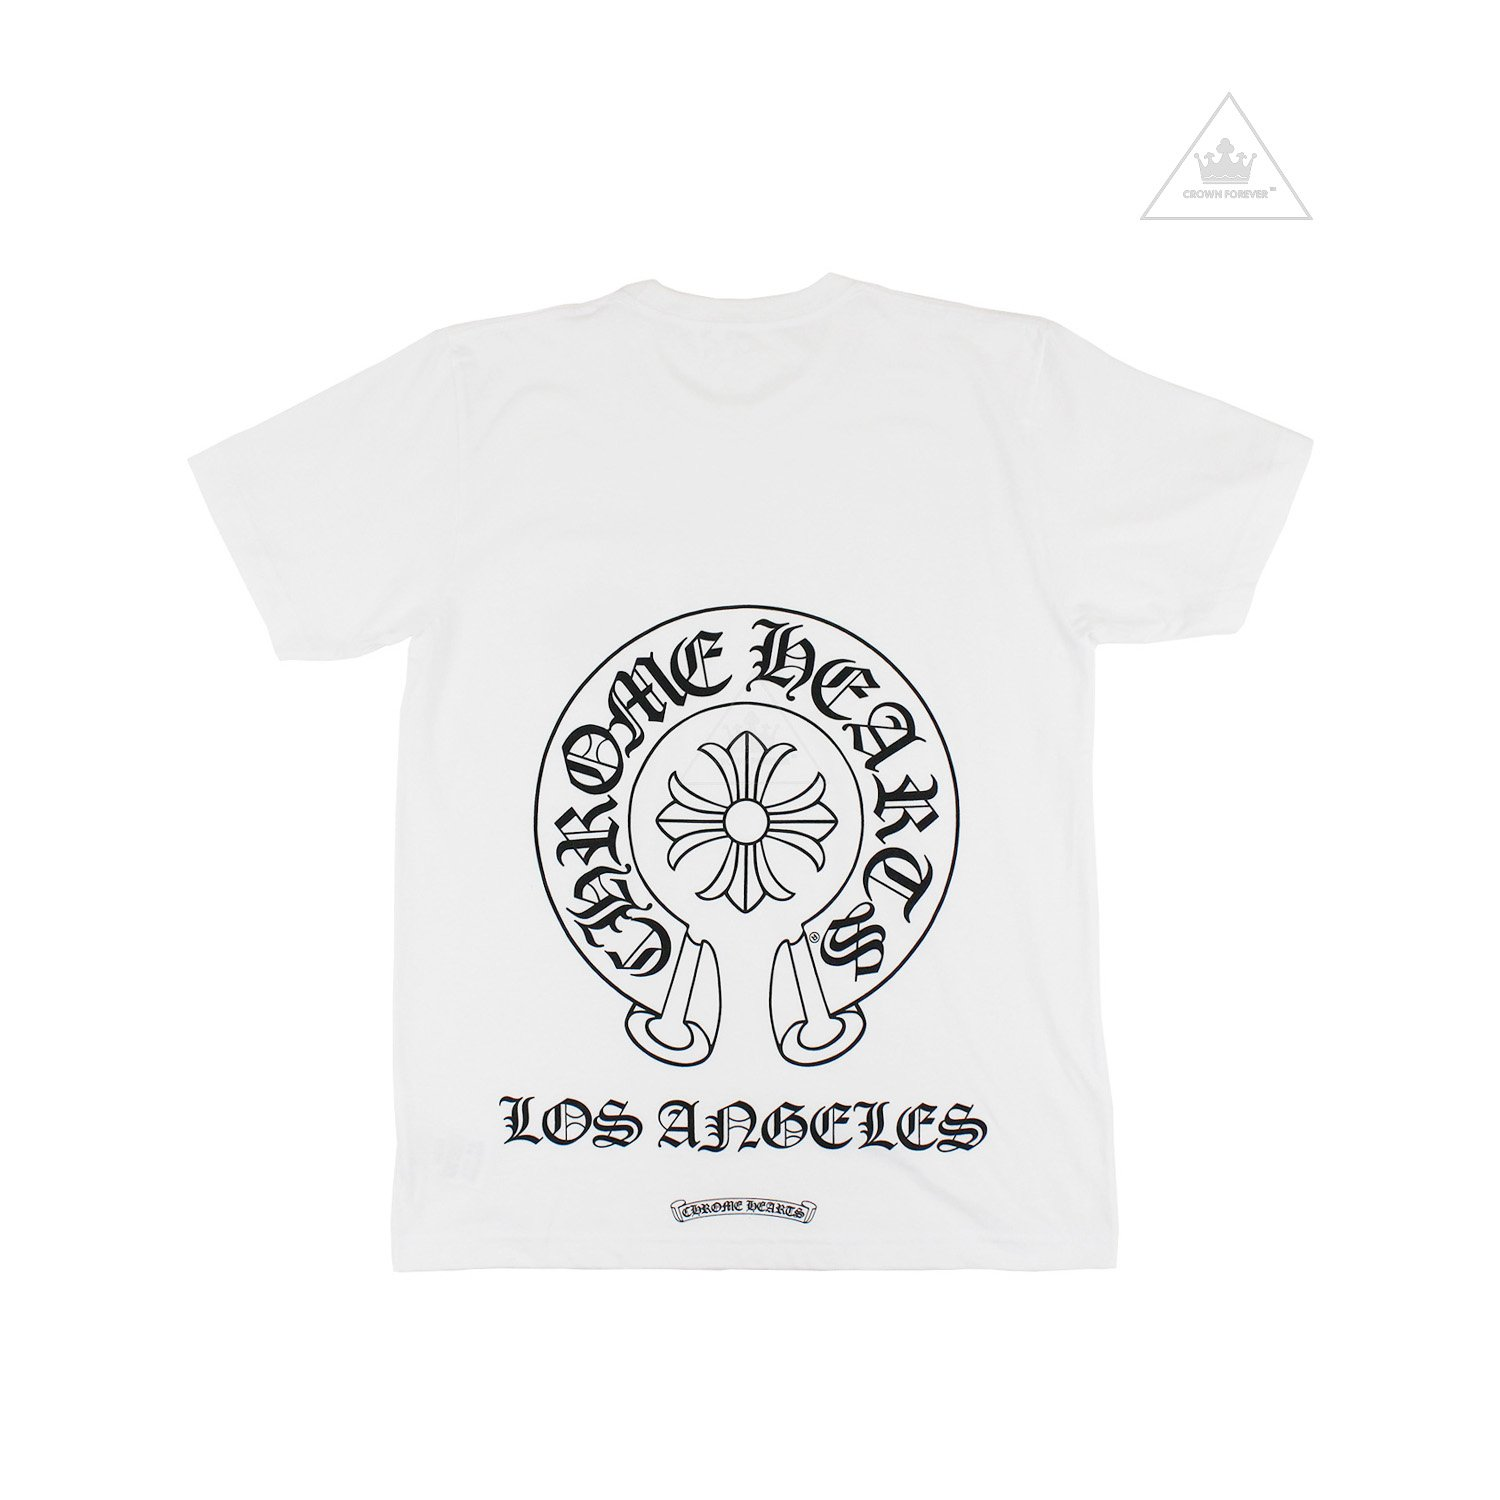 CH Horseshoe Los Angeles Short Sleeve T Shirt White by CHROME HEARTS, available on crownforeverla.com for $265 Kylie Jenner Outerwear SIMILAR PRODUCT